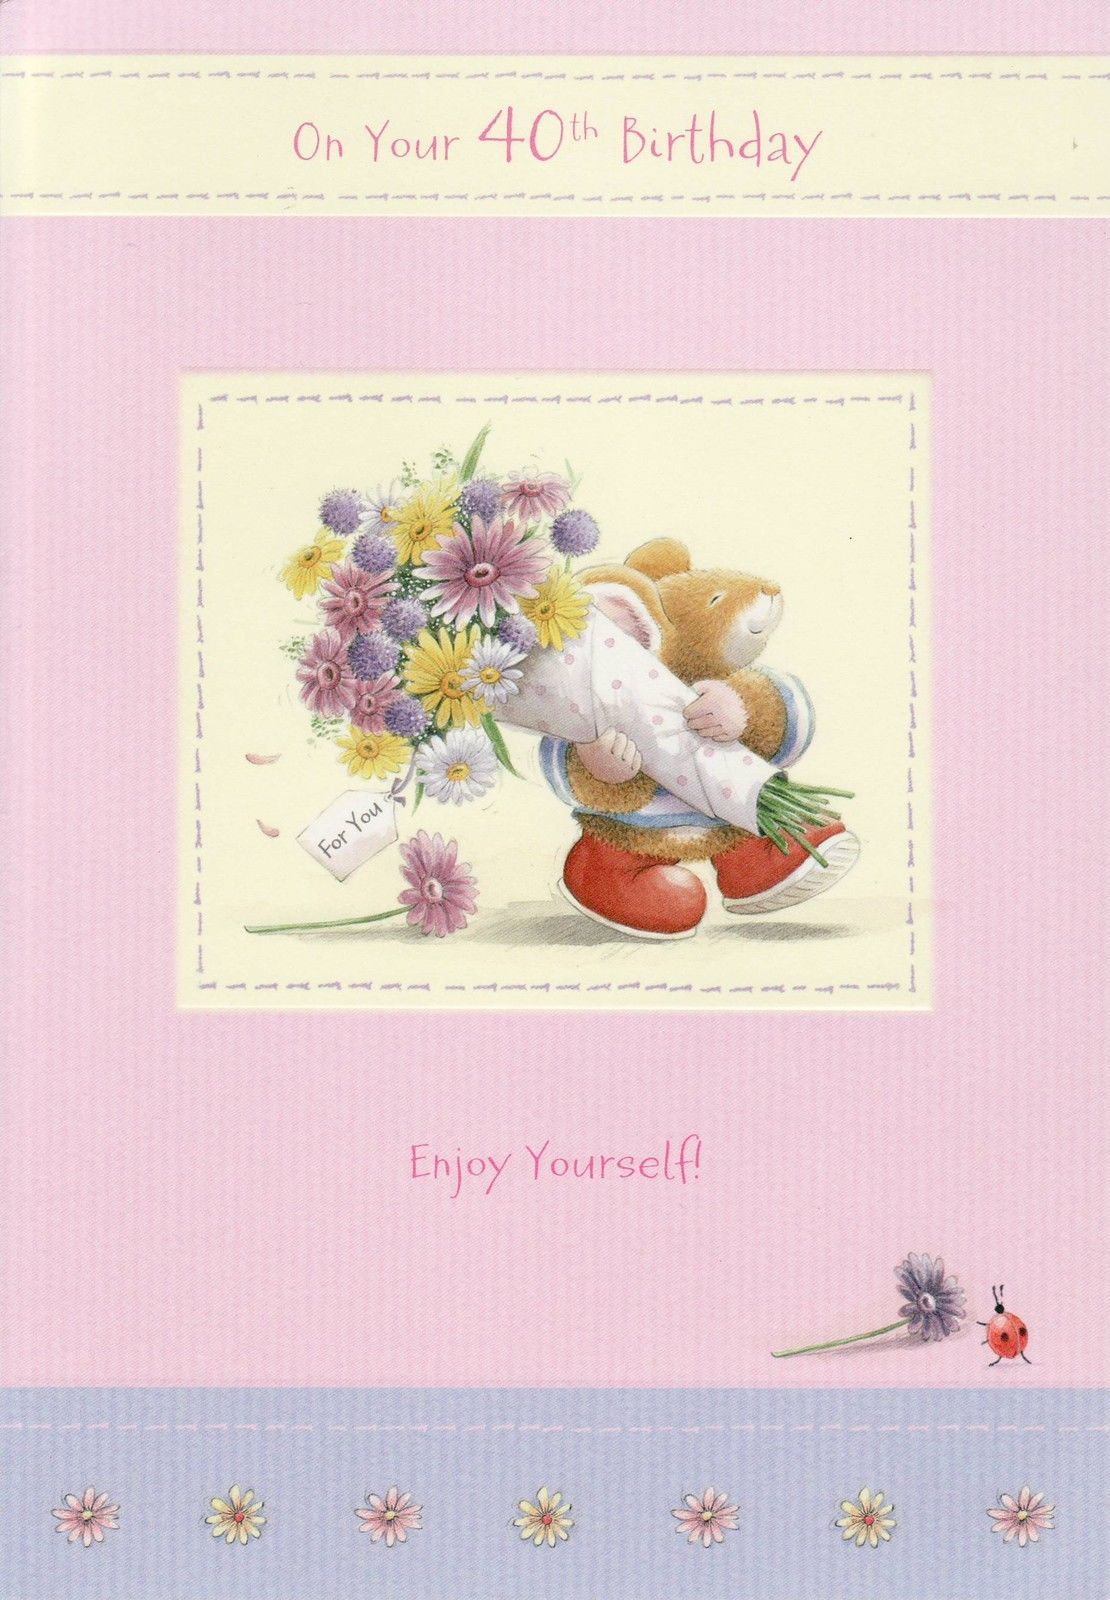 Large cute hallmark country companions mouse birthday card large cute hallmark country companions mouse birthday card 40th birthday ebay bookmarktalkfo Image collections